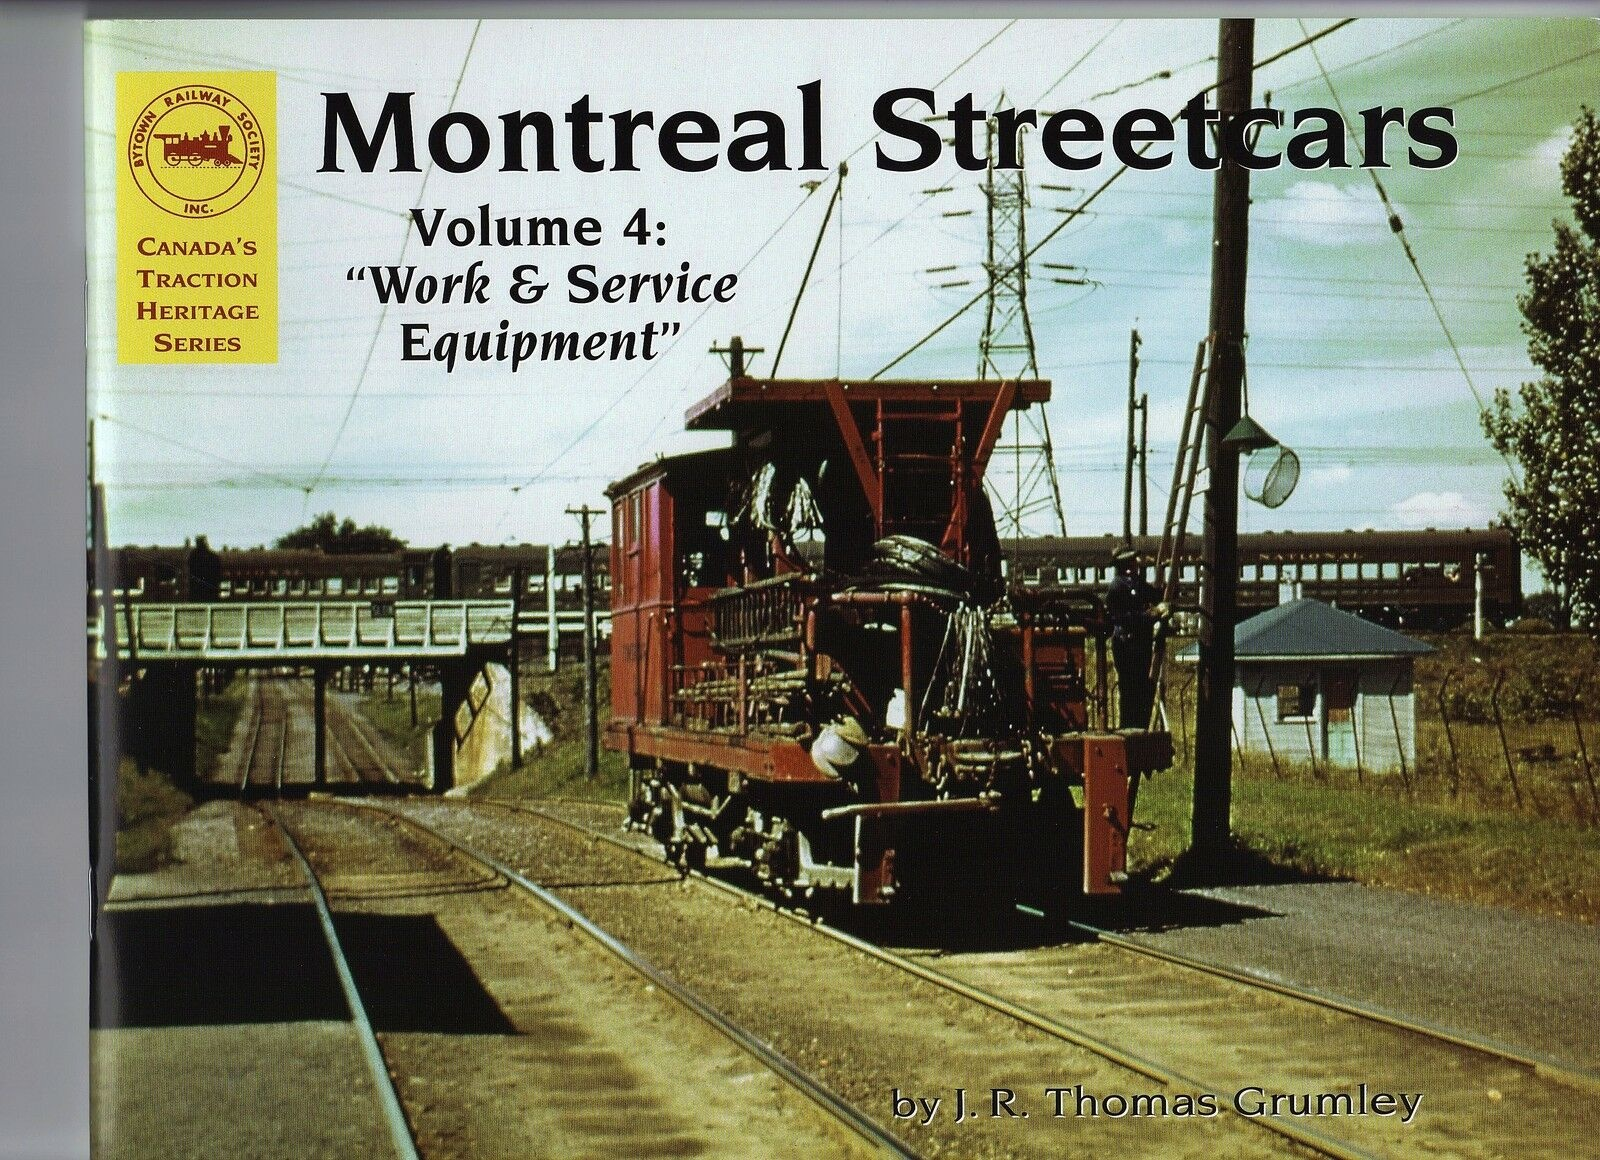 Montreal Streetcars Vol 4 Work & Service Equipment